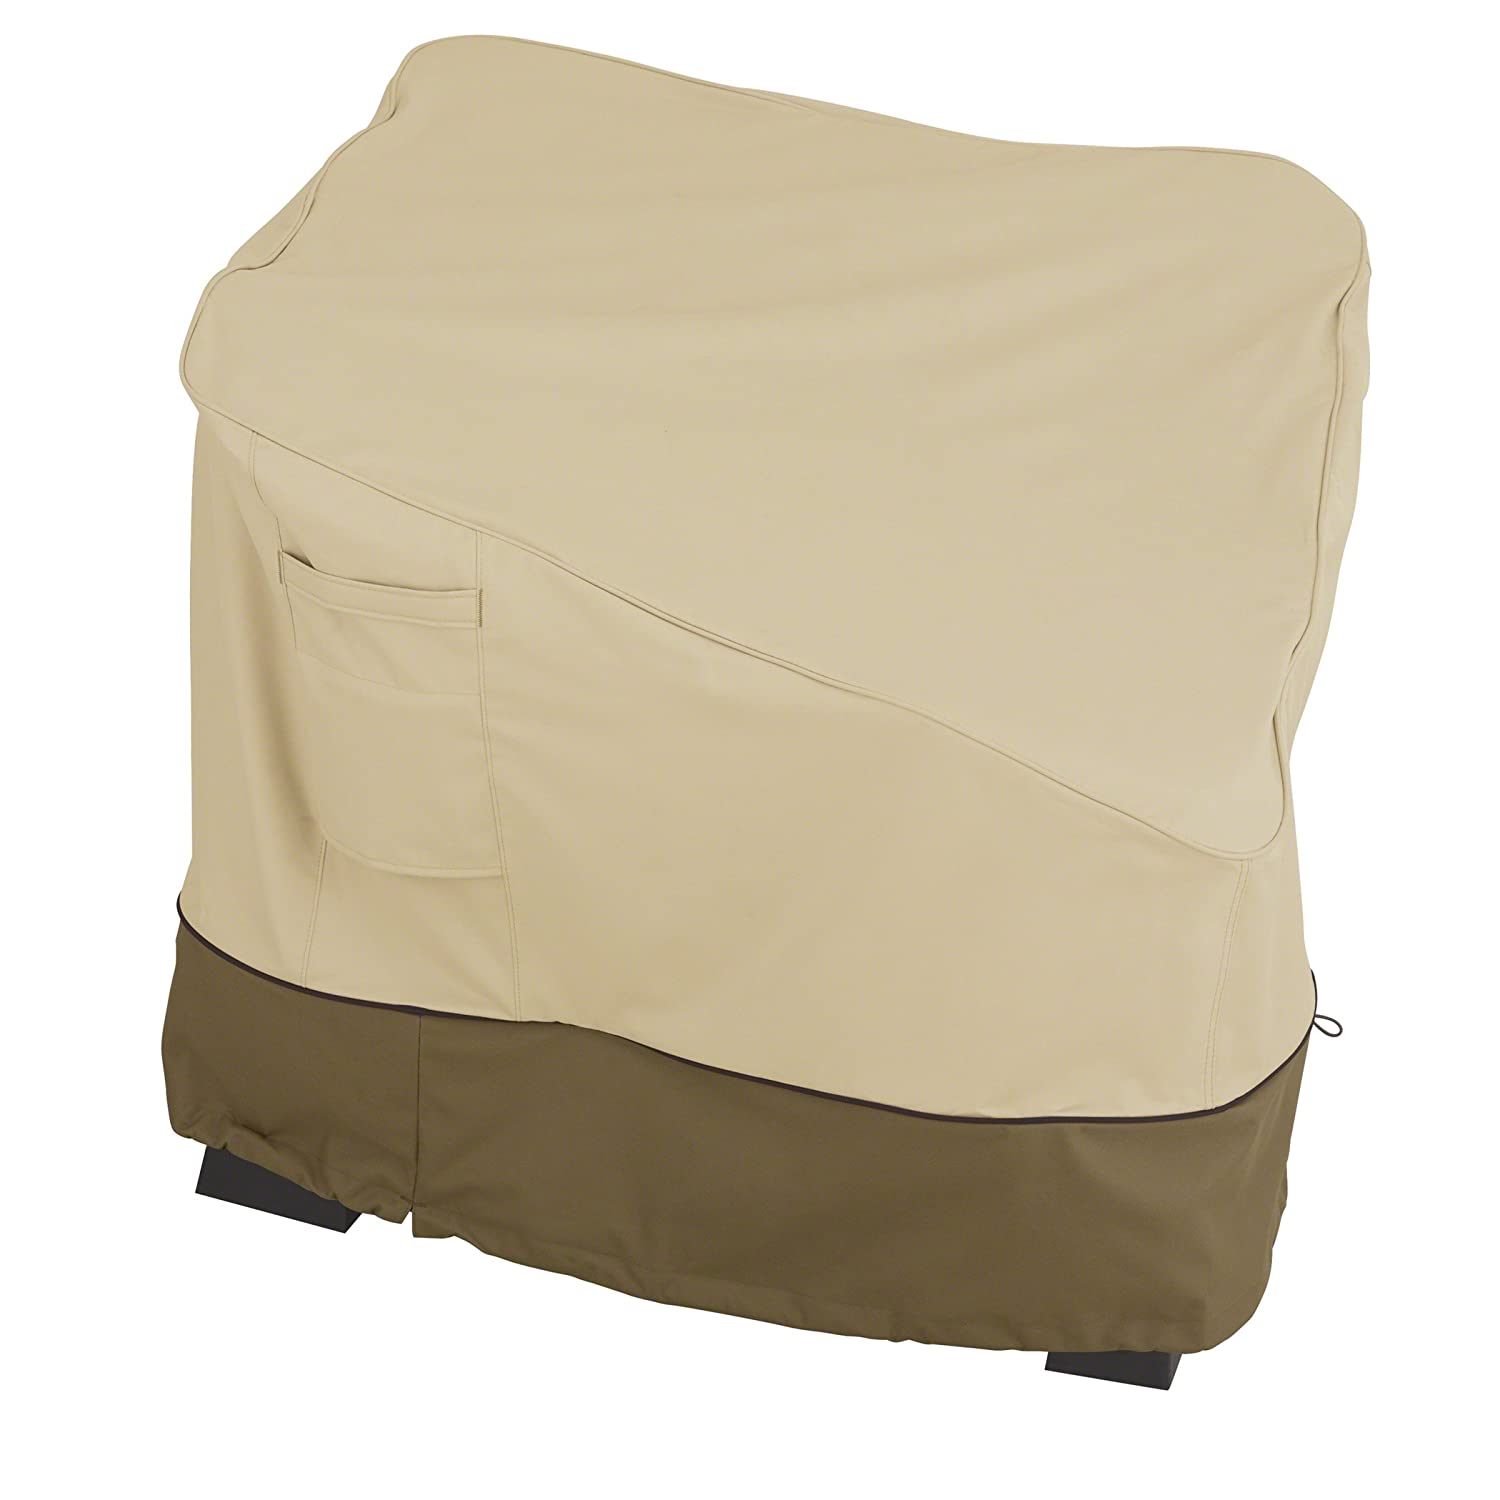 Seat Covers Outdoor Furniture Garden Bench Seat Covers